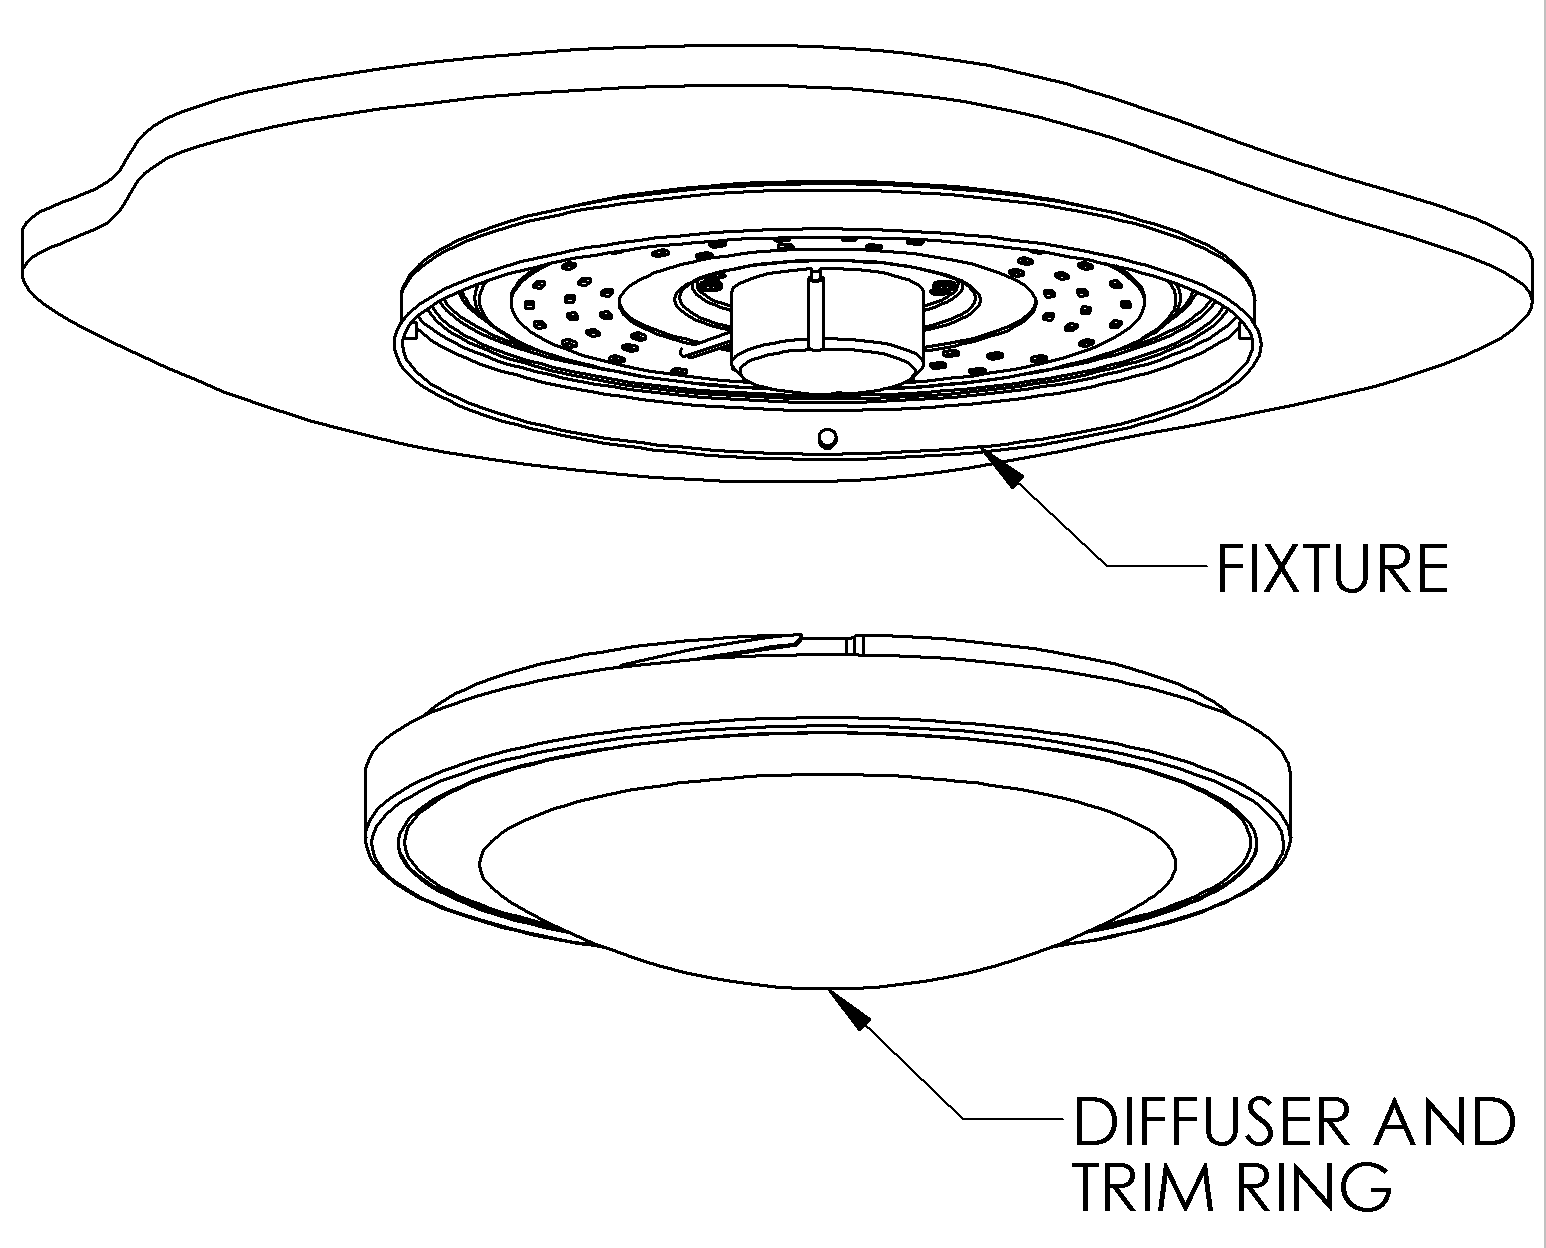 Led Light Drawing At Free For Personal Use Off Road Lights Wiring Diagram Basic 1546x1248 12 Flush Mount Ceiling W White Housing